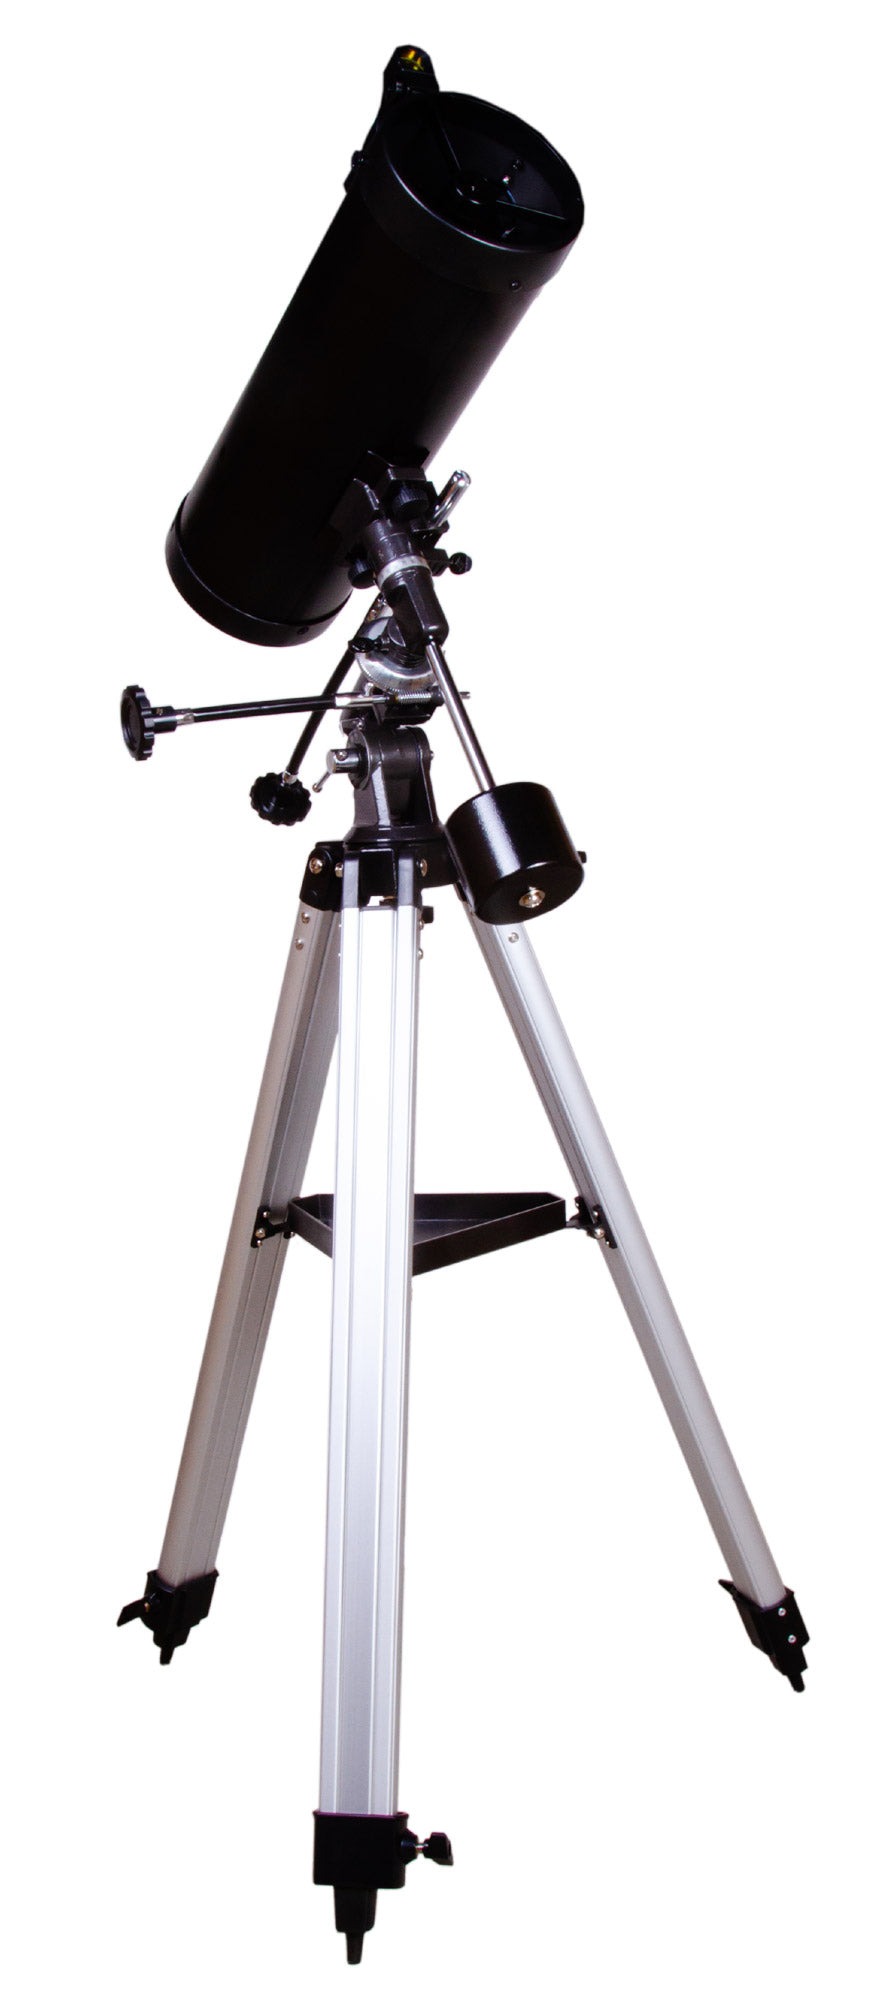 Levenhuk Skyline Plus 115S Newtonian Reflector Telescope with Short Focus and Anti-Reflective Optics Coating for Deep Sky Observations